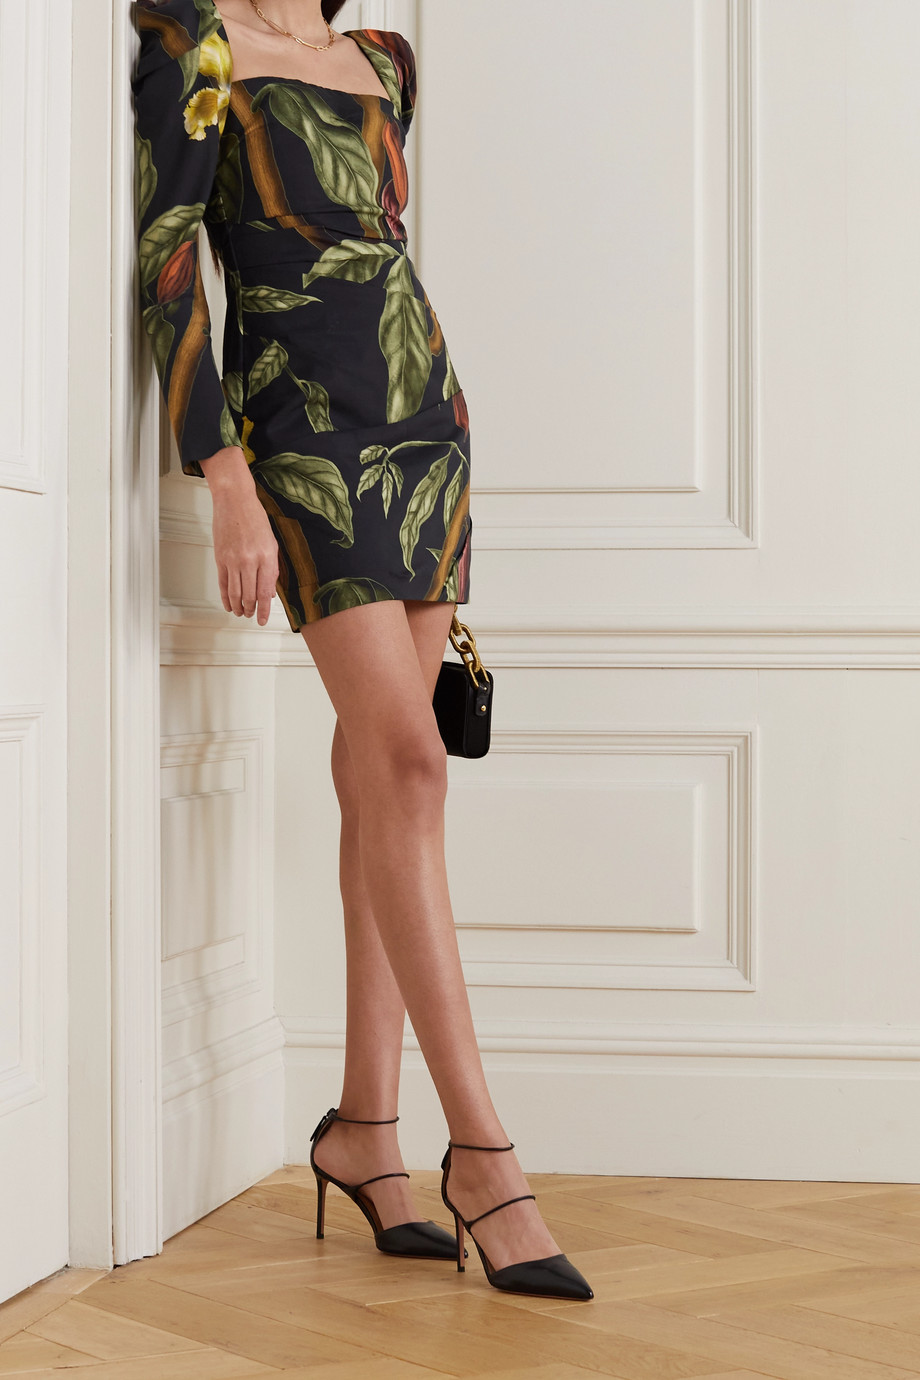 JOHANNA ORTIZ + NET SUSTAIN Gathering Nature ruched floral-print TENCEL mini dress